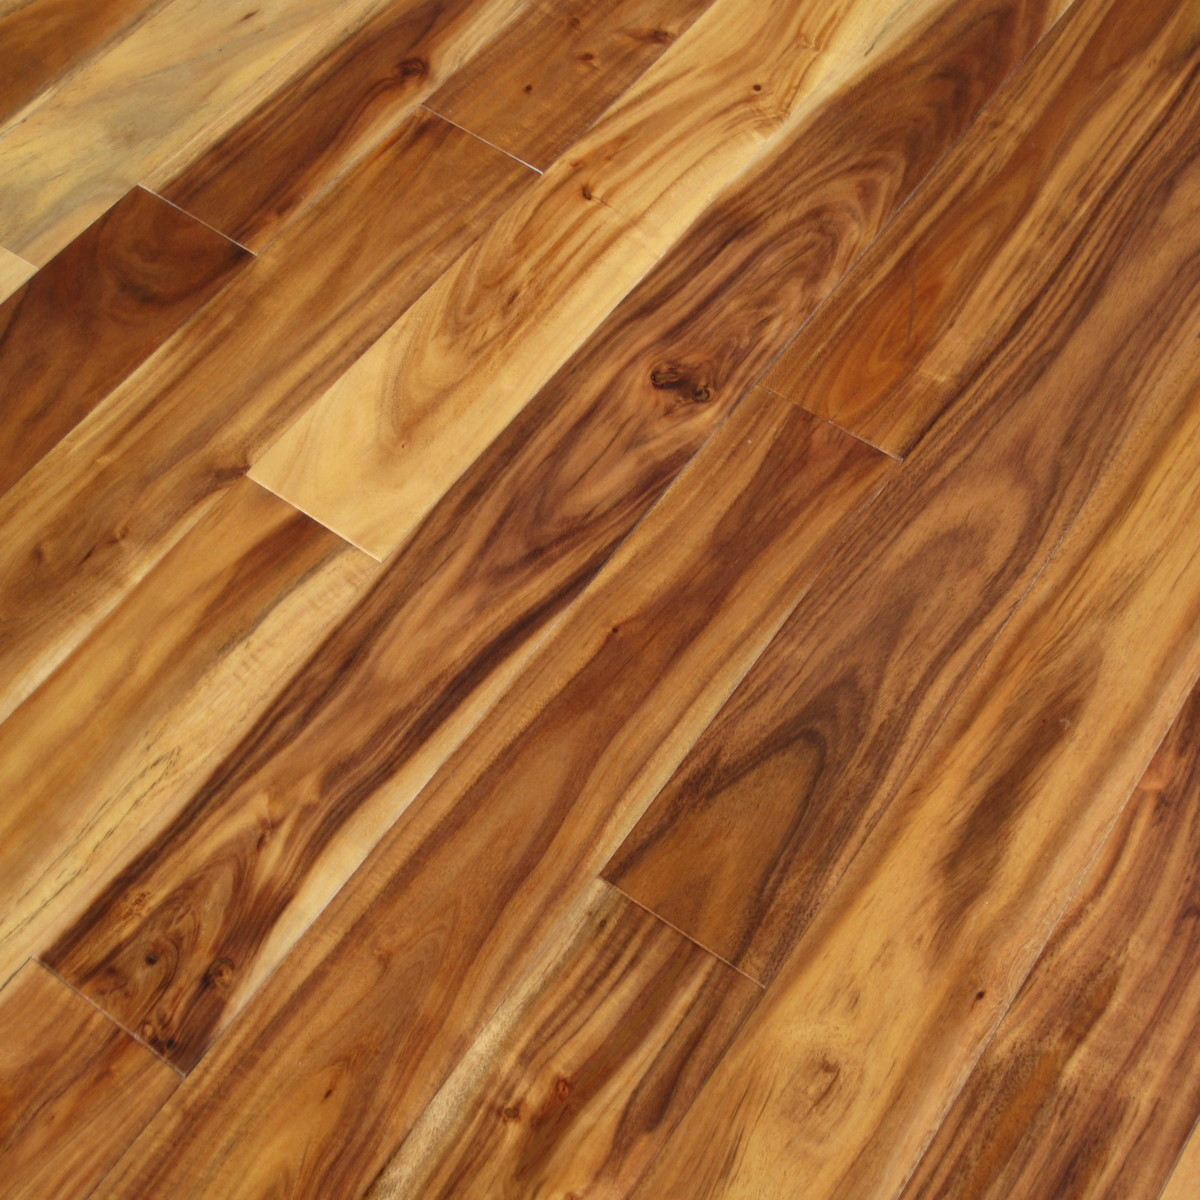 Acacia natural plank hardwood flooring unique wood floors for Wood flooring natural